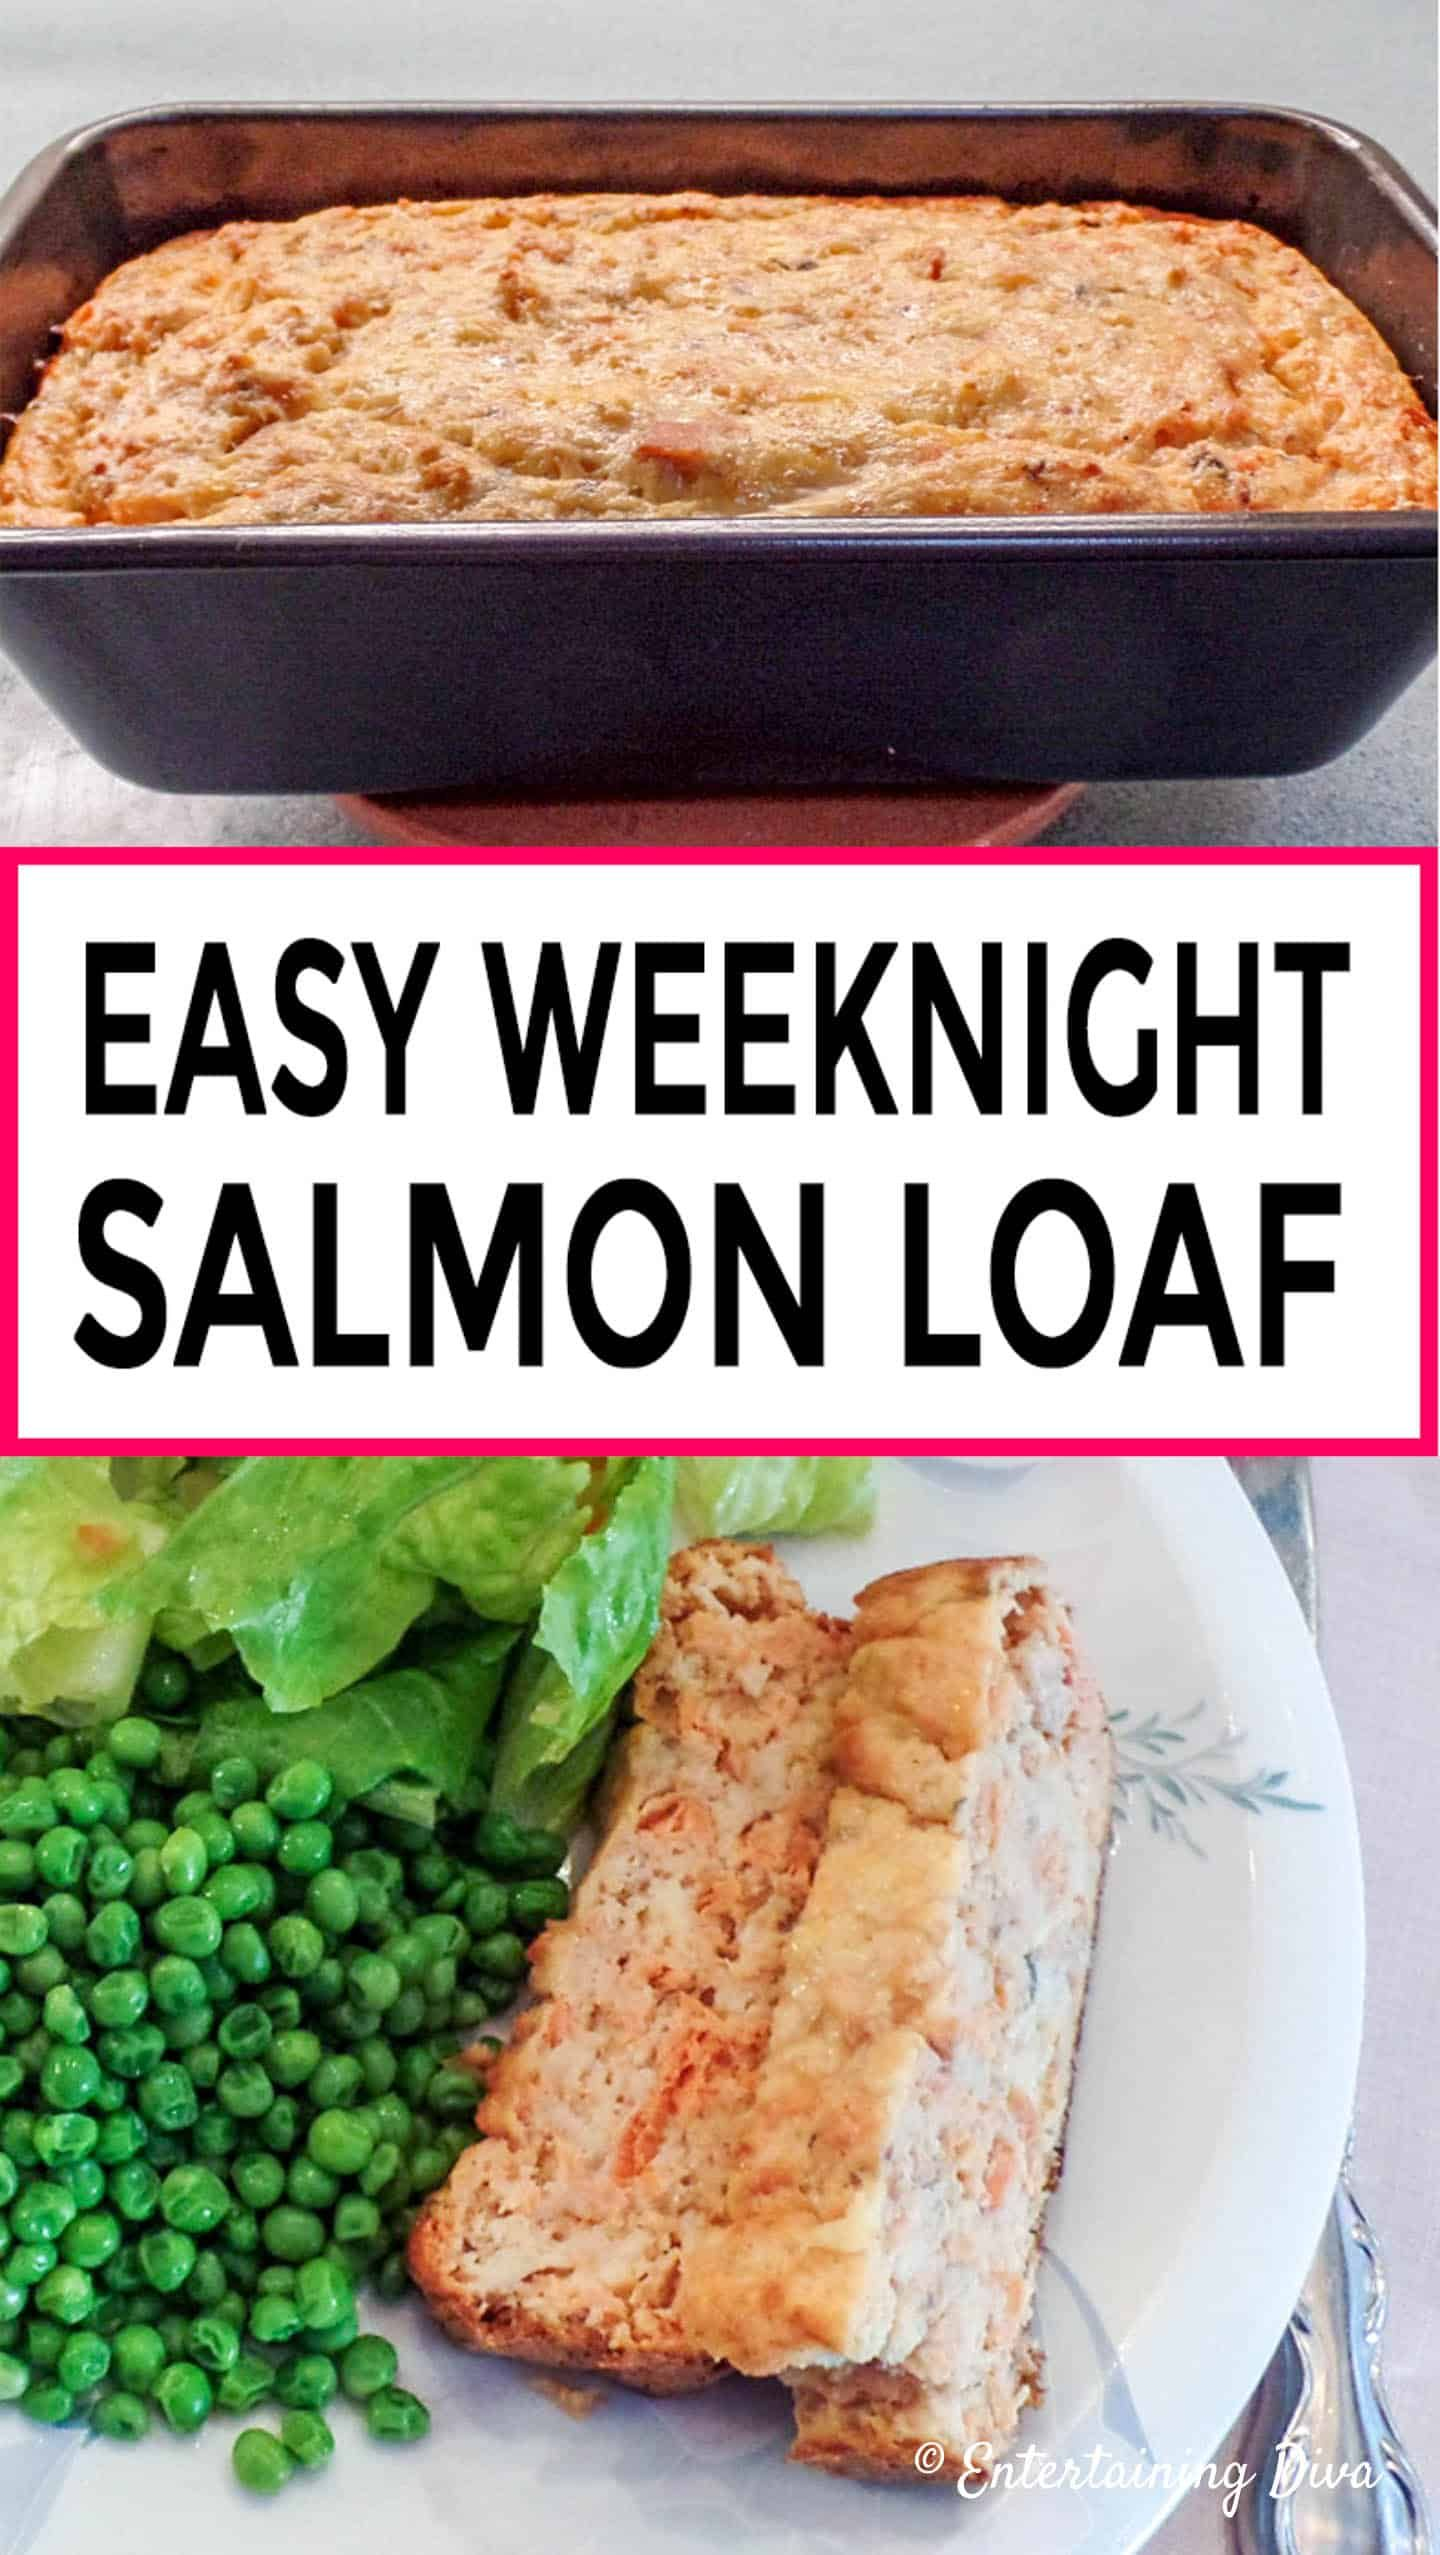 This easy salmon loaf recipe made with crackers and canned salmon is perfect for those weeknight meals when you don't have much time (or just don't feel like cooking). You'll have dinner on the table in less than an hour. #fromhousetohome #salmonloaf #salmonrecipe #dinner #easydinnerrecipe #recipe #cannedsalmon #fastmeals #easymeals #maincourse #seafood #recipes #salmonrecipes